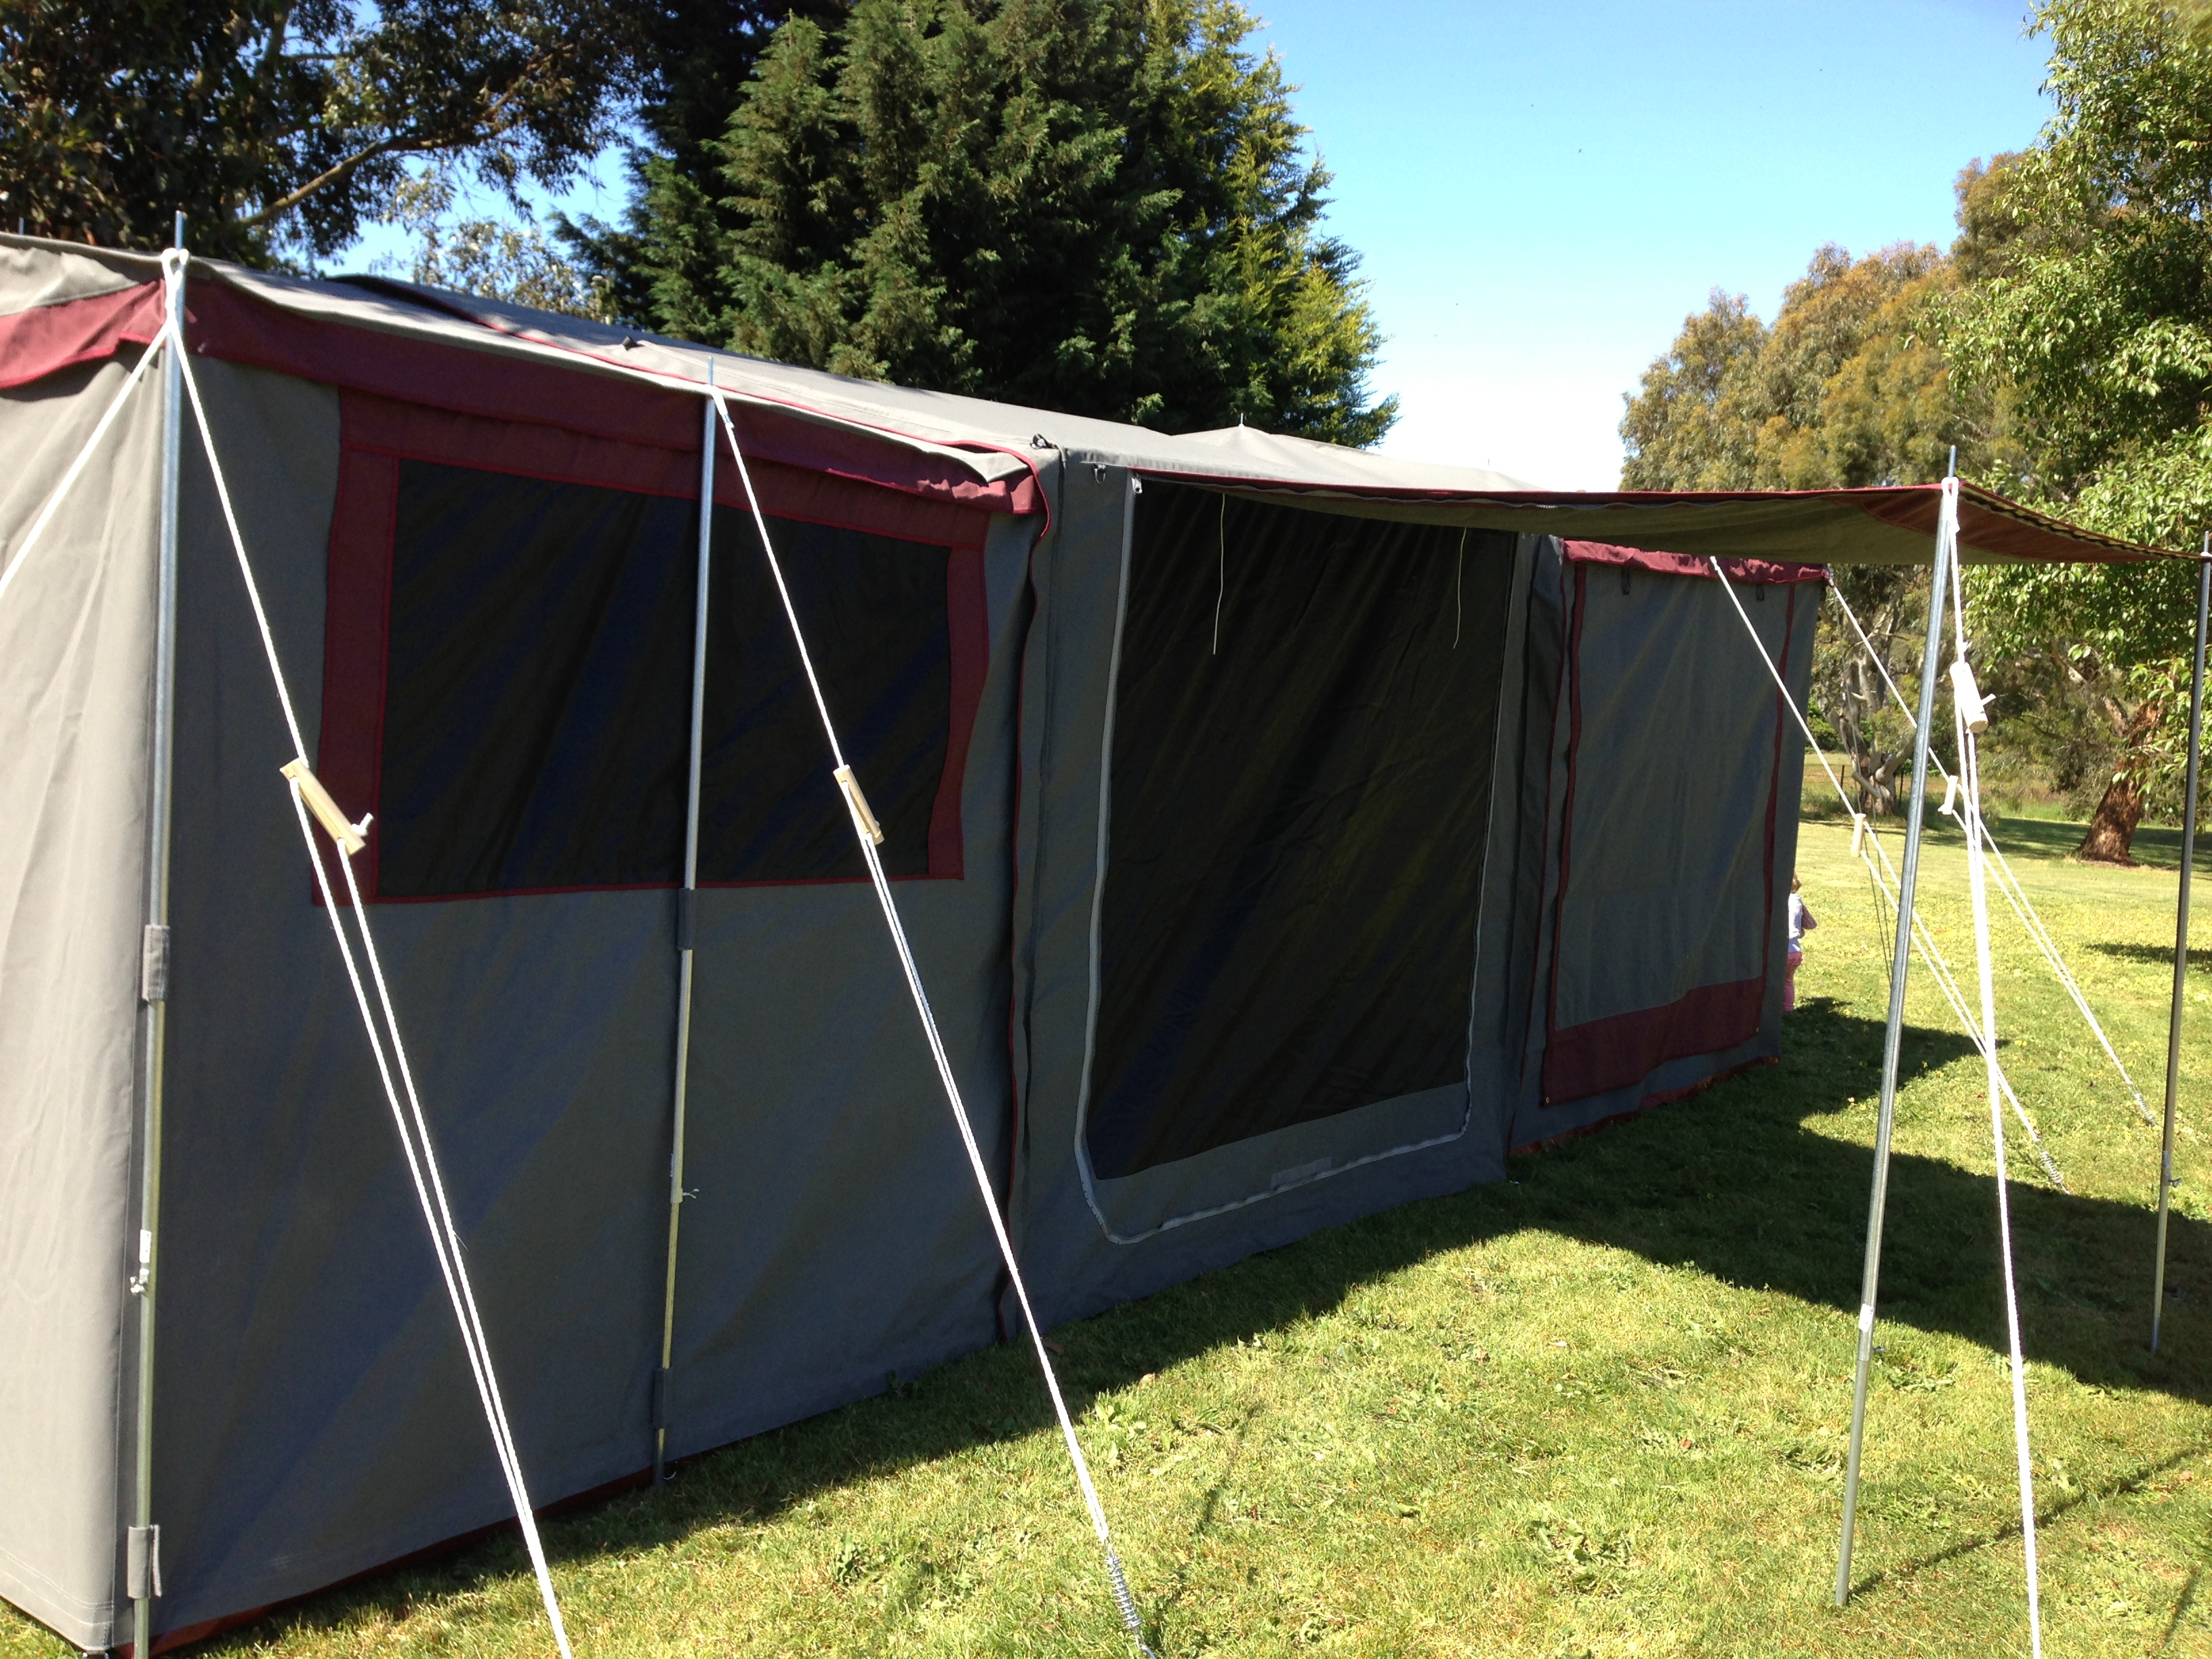 Gallery & Sunset Campers - Australian made quality camper trailers for sale ...